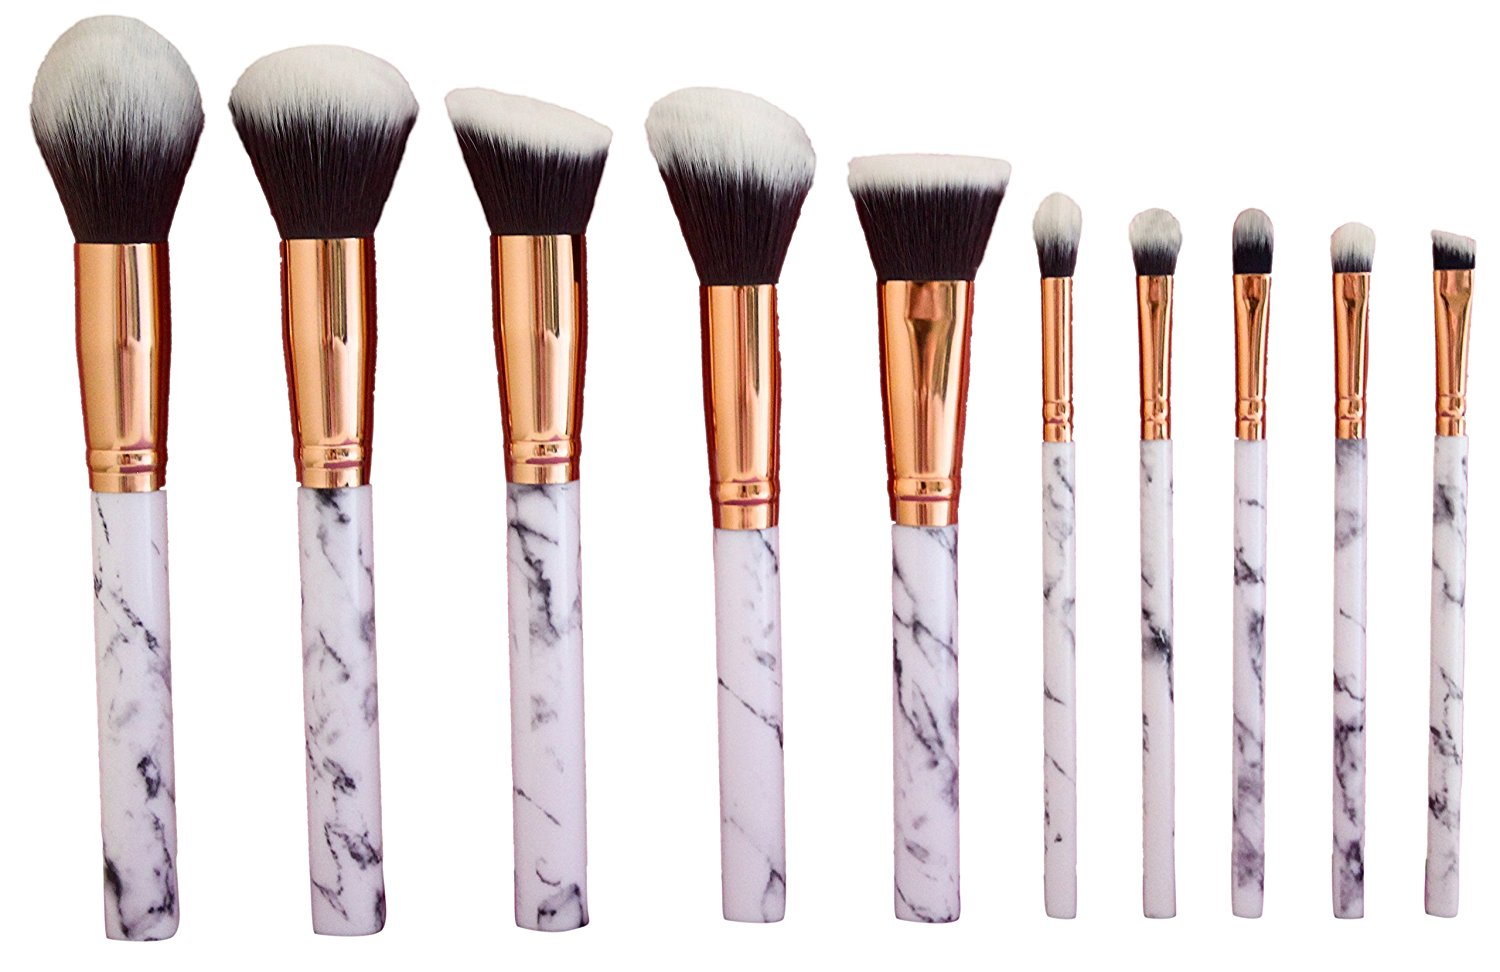 Amazon.com: Professional makeup brushes set 10pcs with white marble look makeup brush handle: Kitchen & Dining